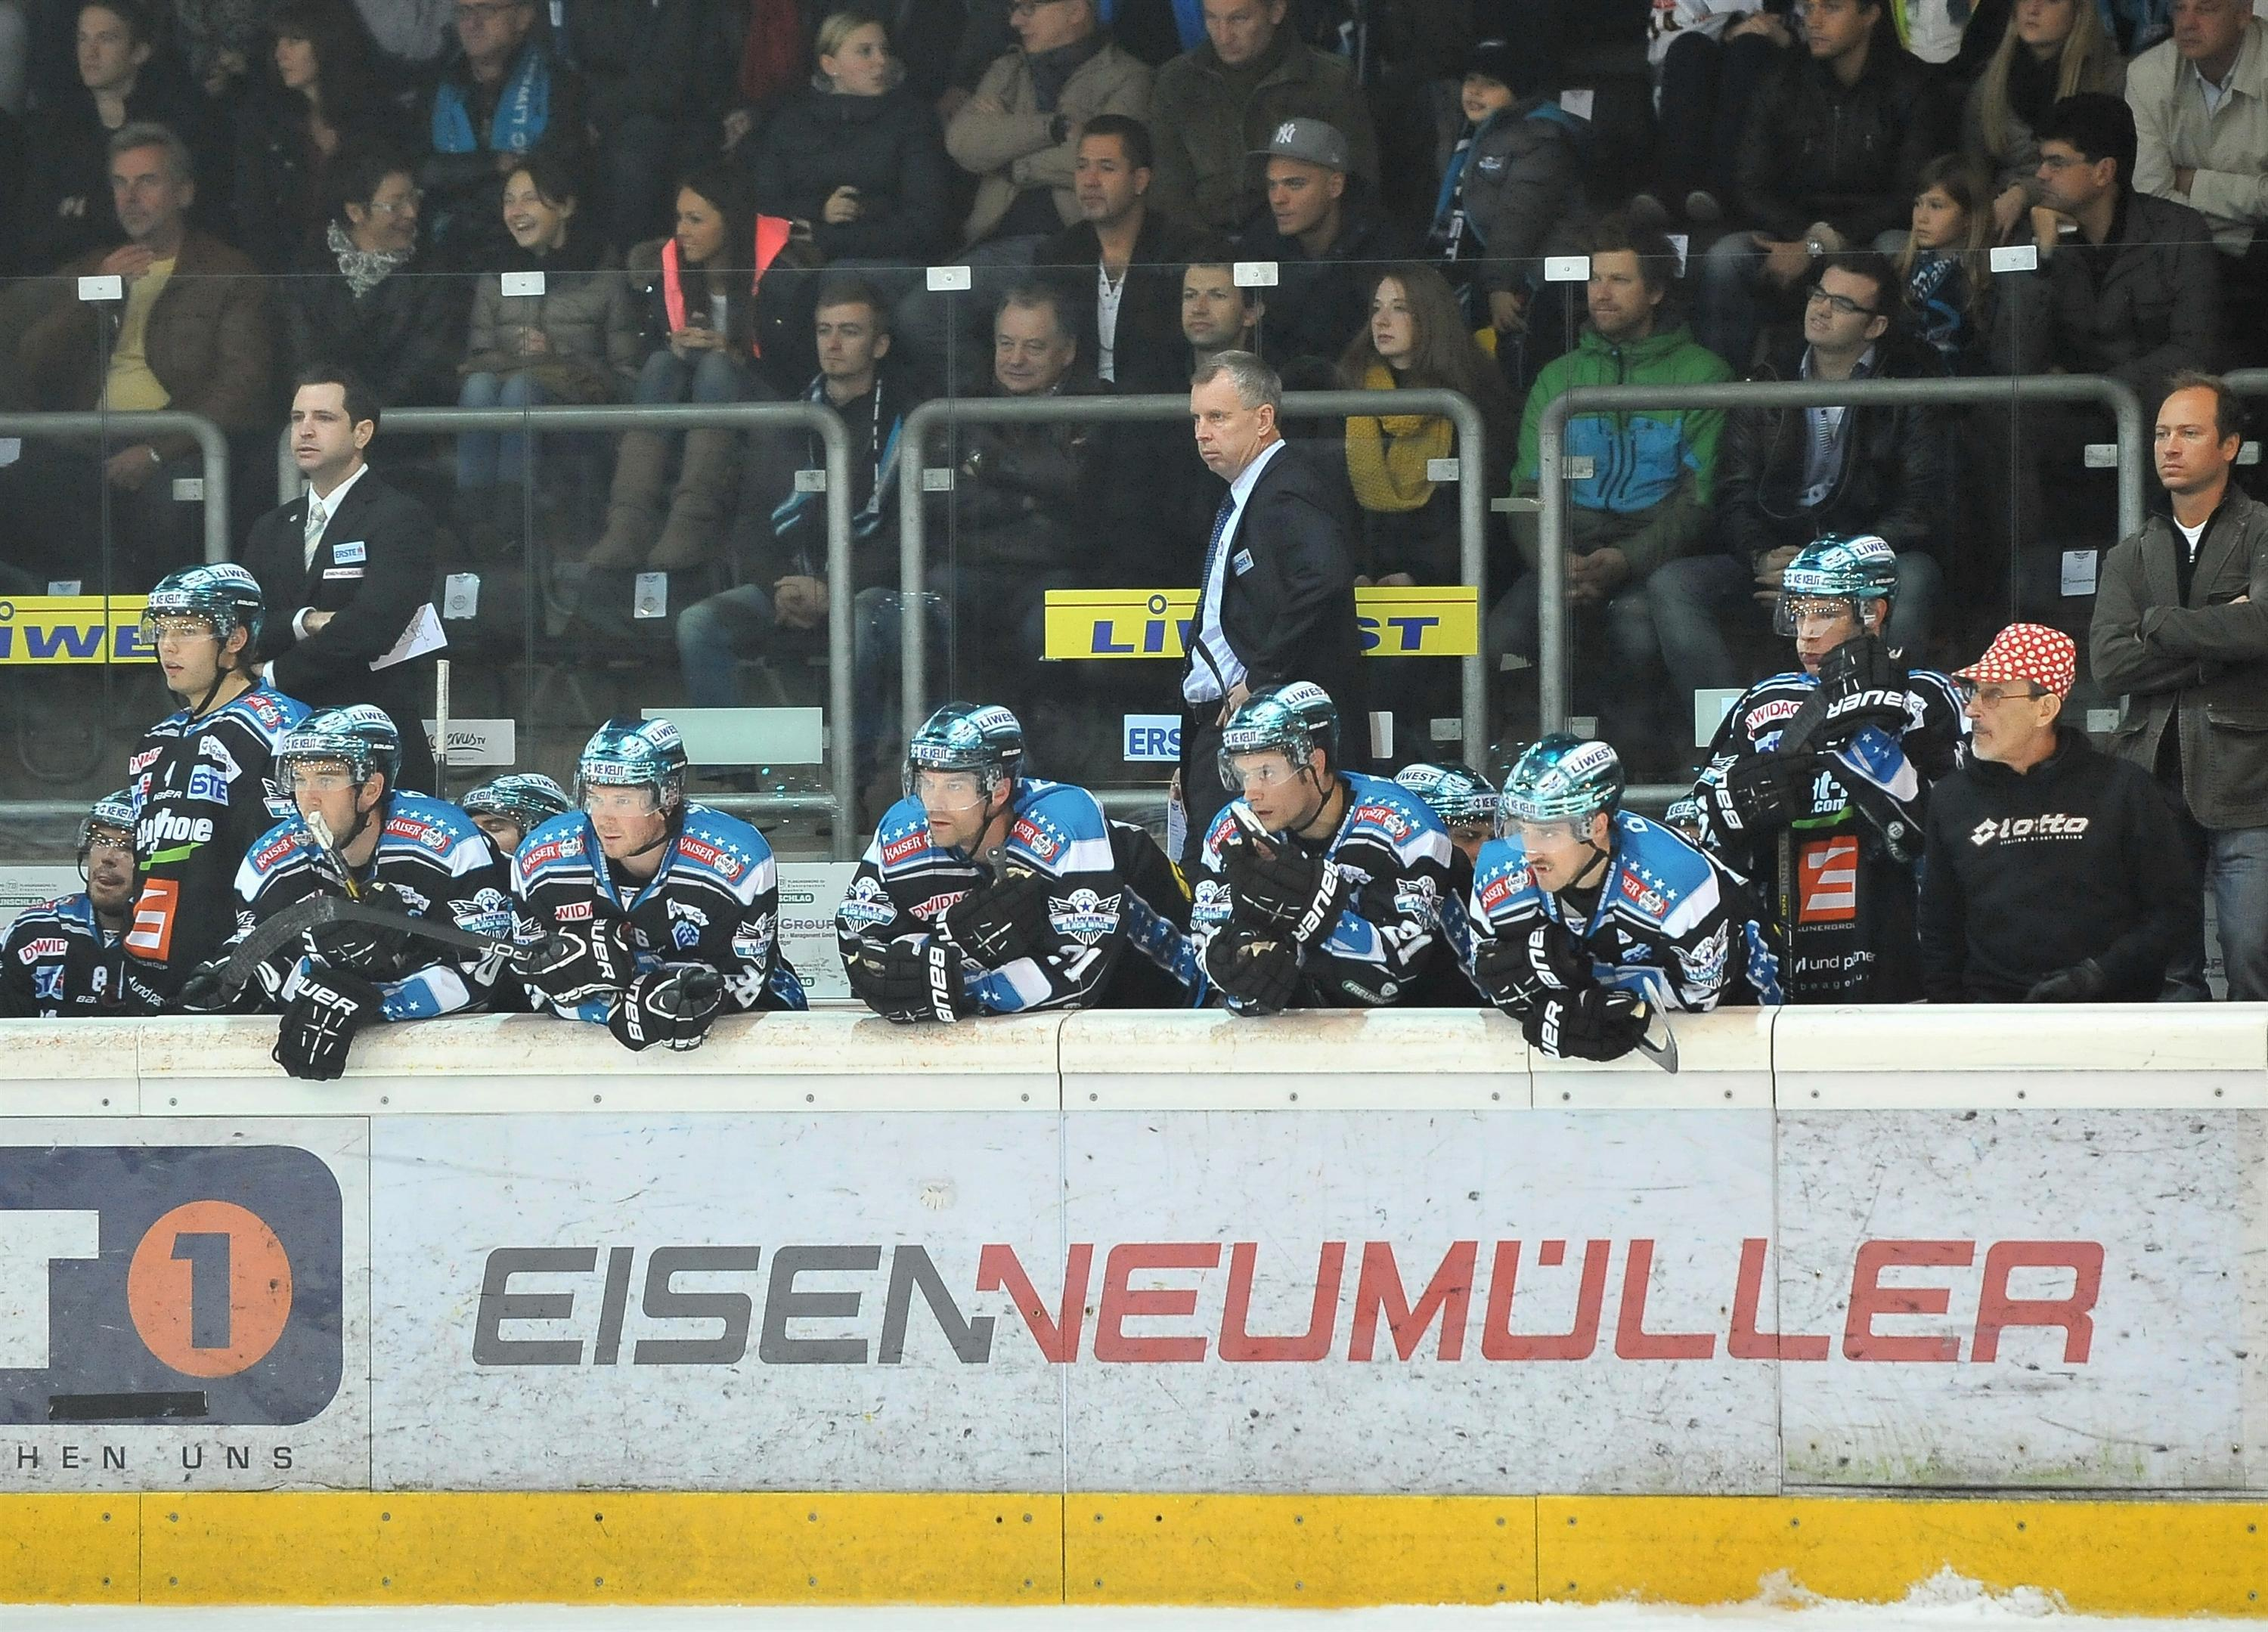 Eishockey Black Wings Linz vs KHL Medvescak Zagreb 26.10.2012 – Linzer Bank